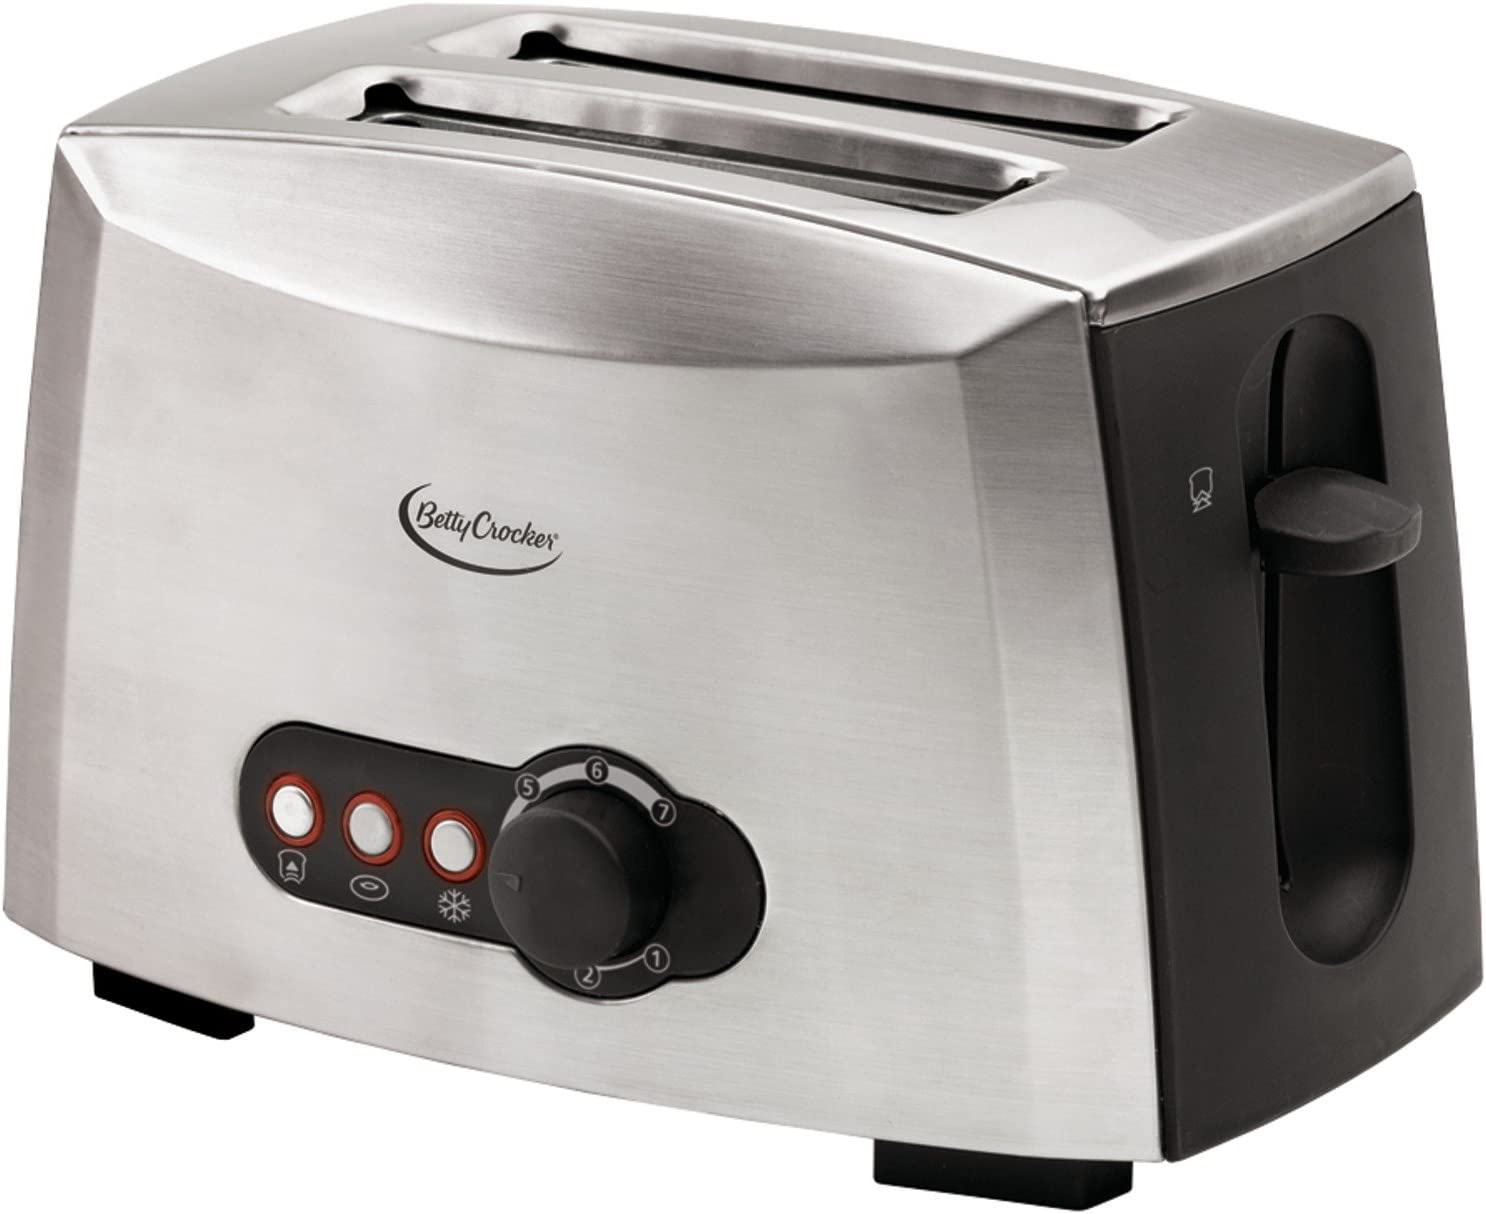 Betty Crocker BC-1618C 2-slice Toaster, Brushed Stainless Steel